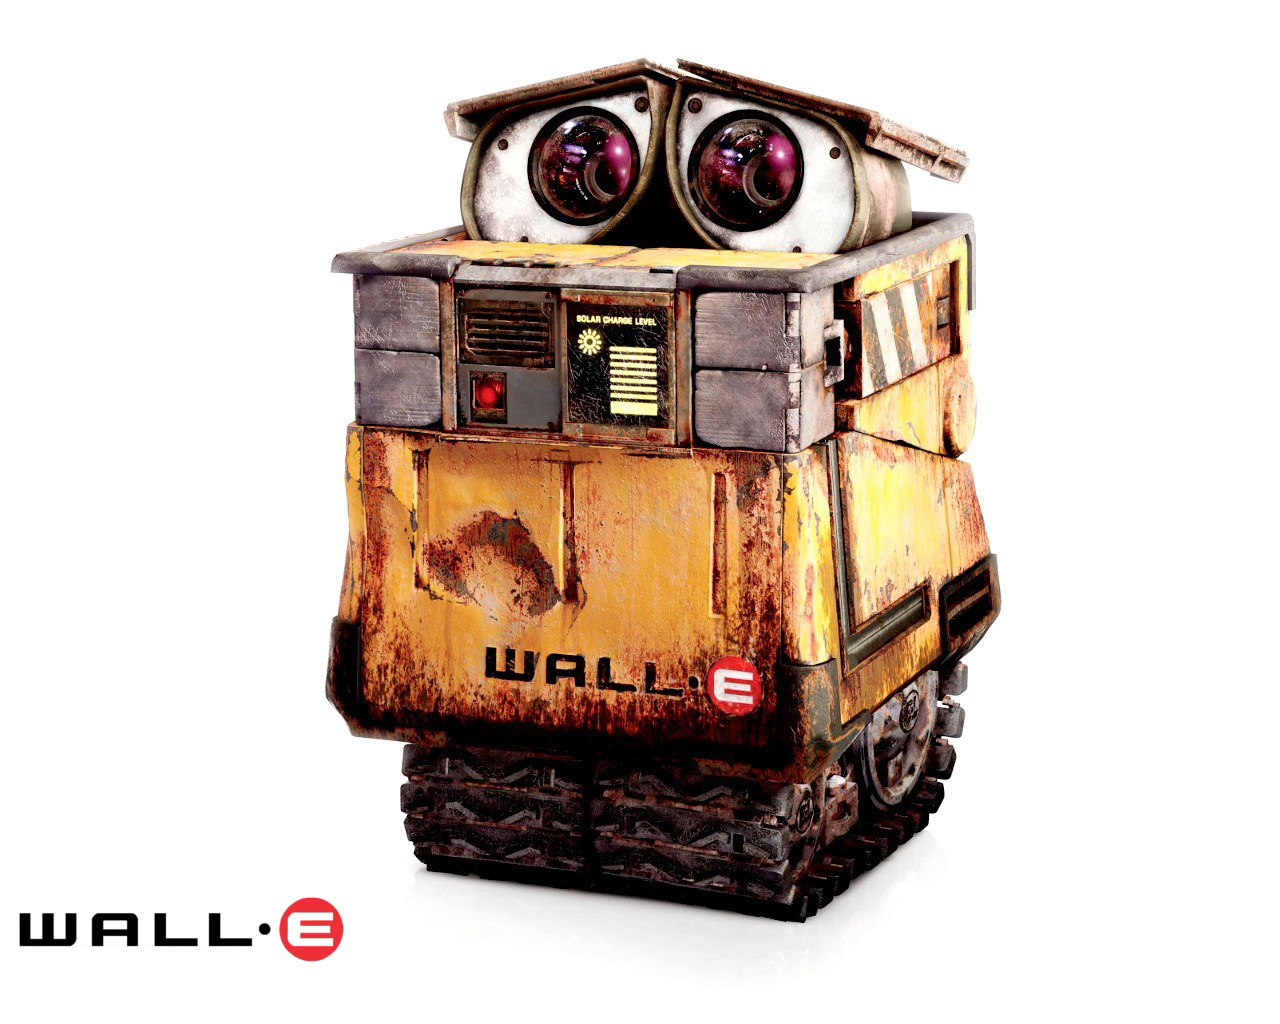 WALL-E Pixar Character HD Wallpaper Pictures Top Background